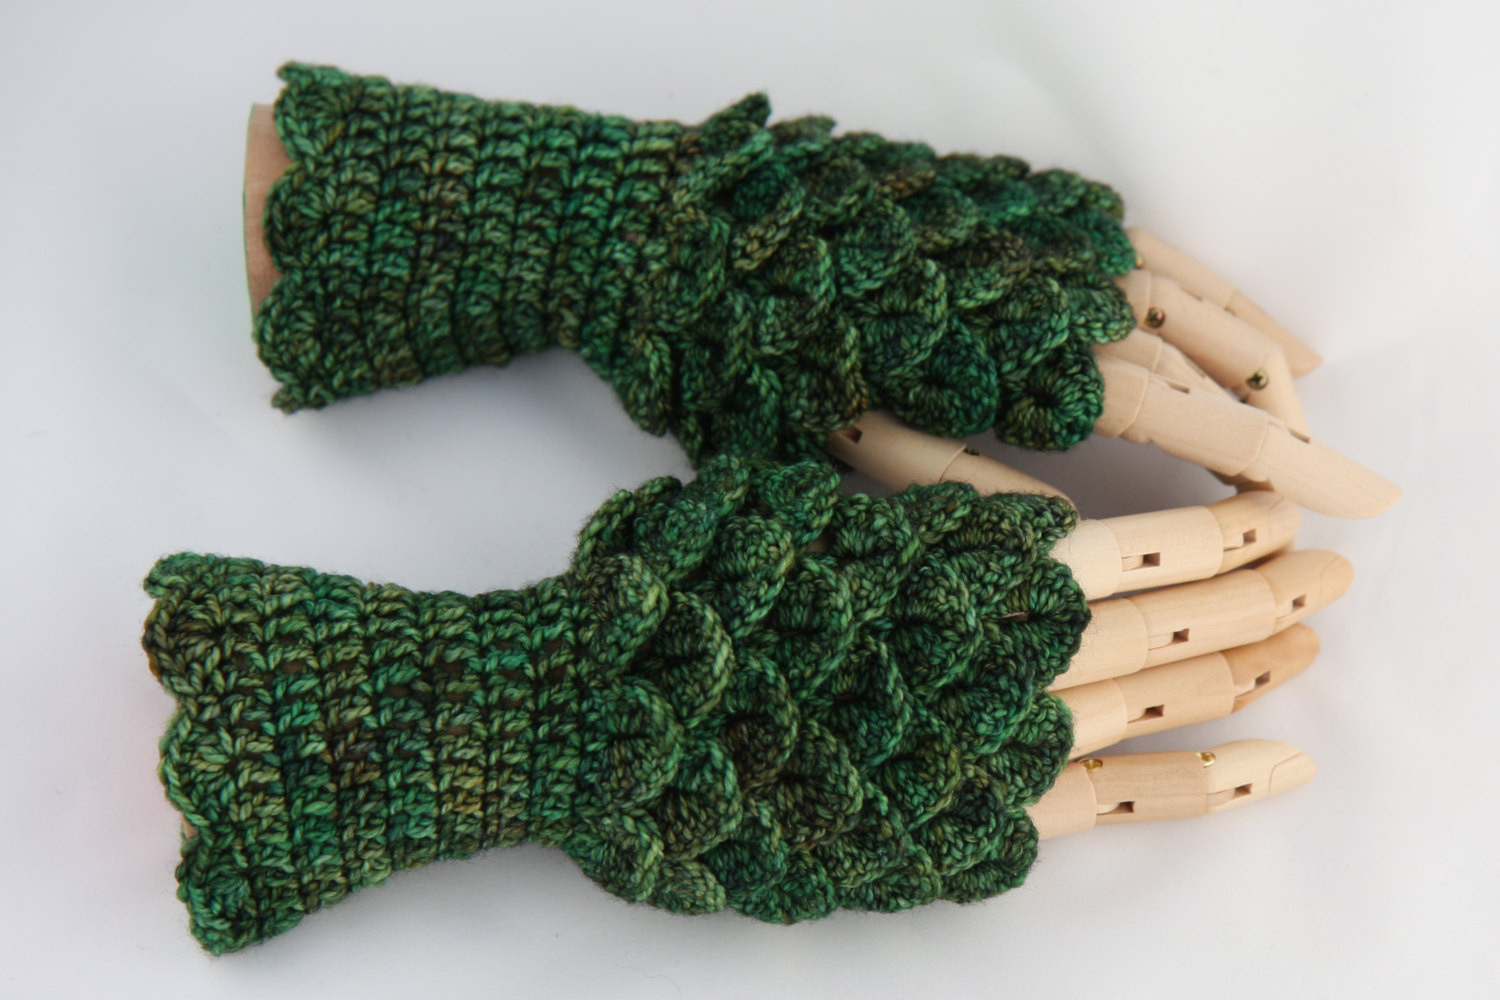 Dragon Scale Crochet Gloves Fresh Crochet Dragonscale Fingerless Gloves Woodland by Of Dragon Scale Crochet Gloves Inspirational Dragon Scale Crocheted Gloves